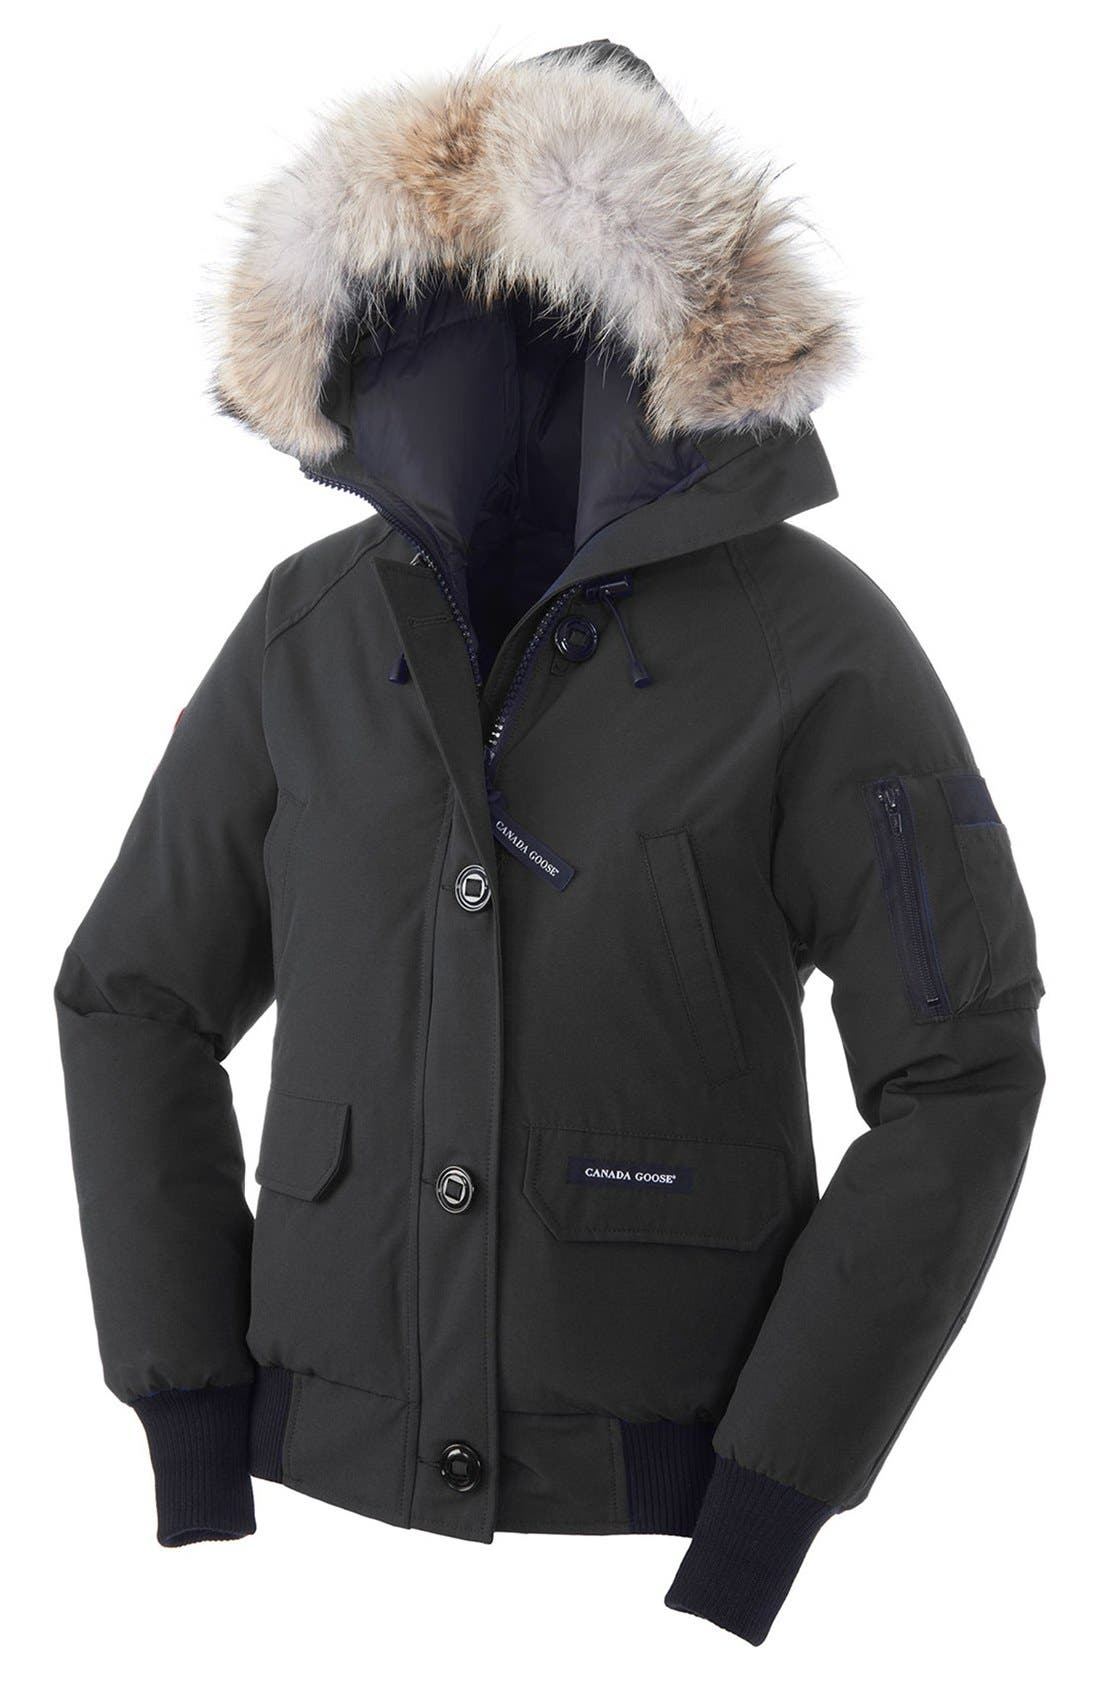 Alternate Image 1 Selected - Canada Goose 'Chilliwack' Regular Fit Down Bomber Jacket with Genuine Coyote Fur